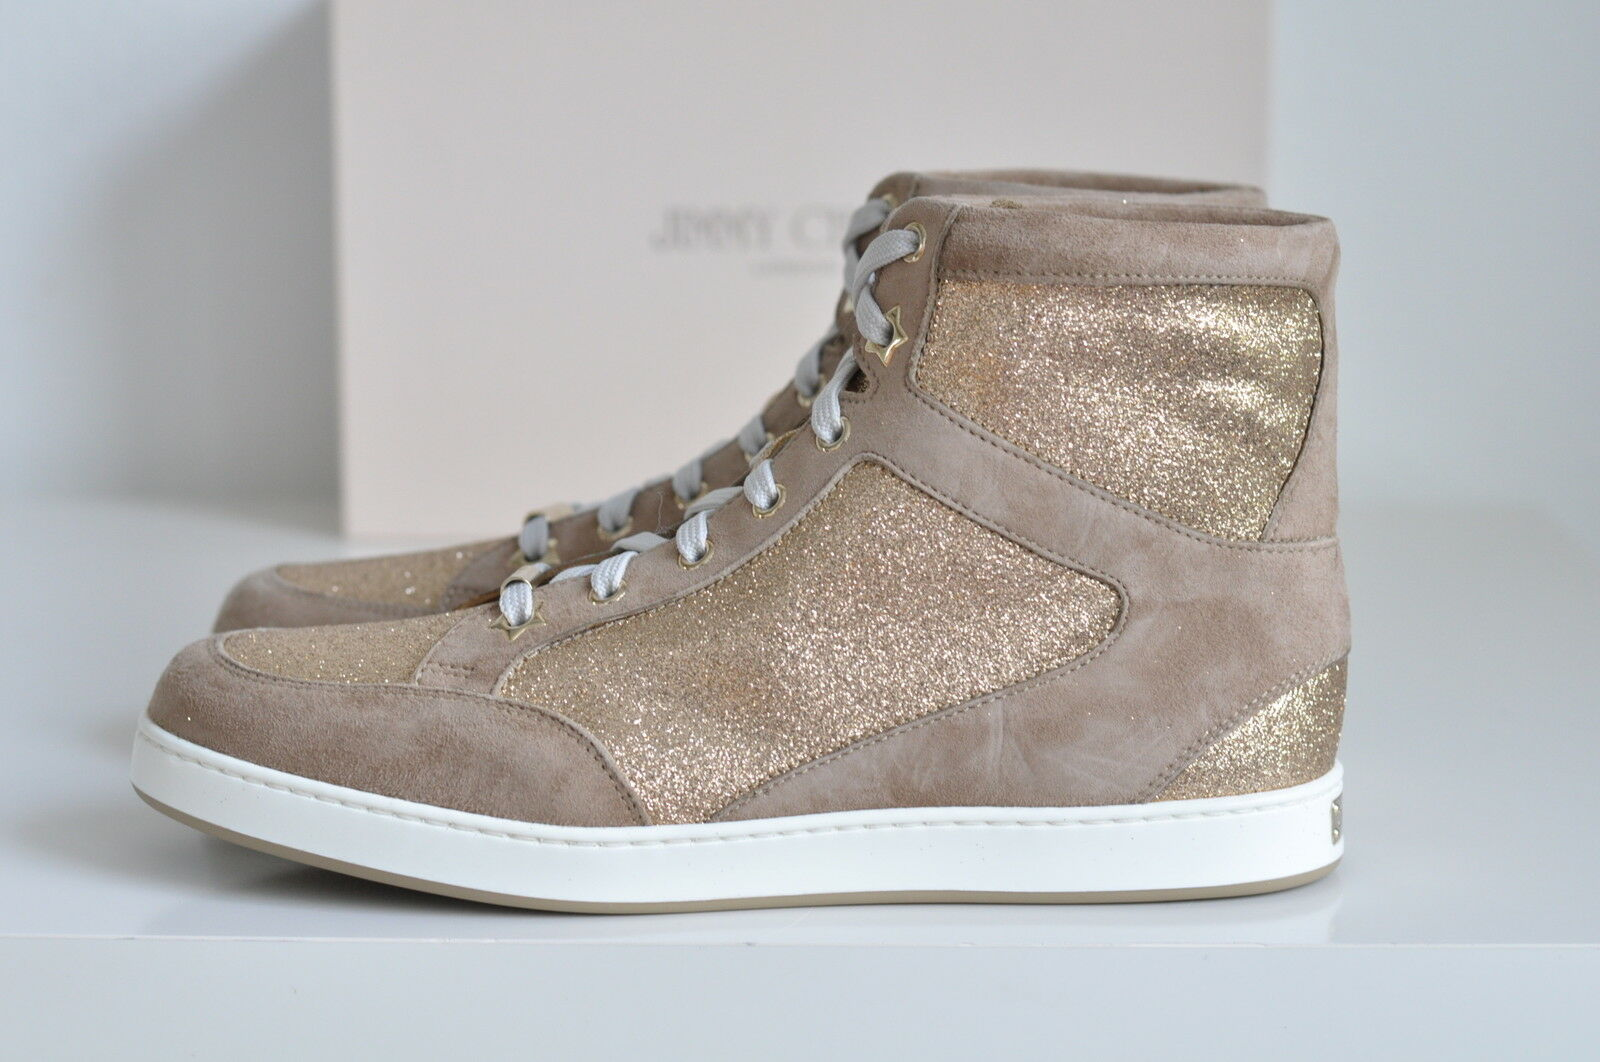 NIB Jimmy Choo Tokyo Glitter Suede High Top Lace-up Sneakers shoes sz 7.5   37.5